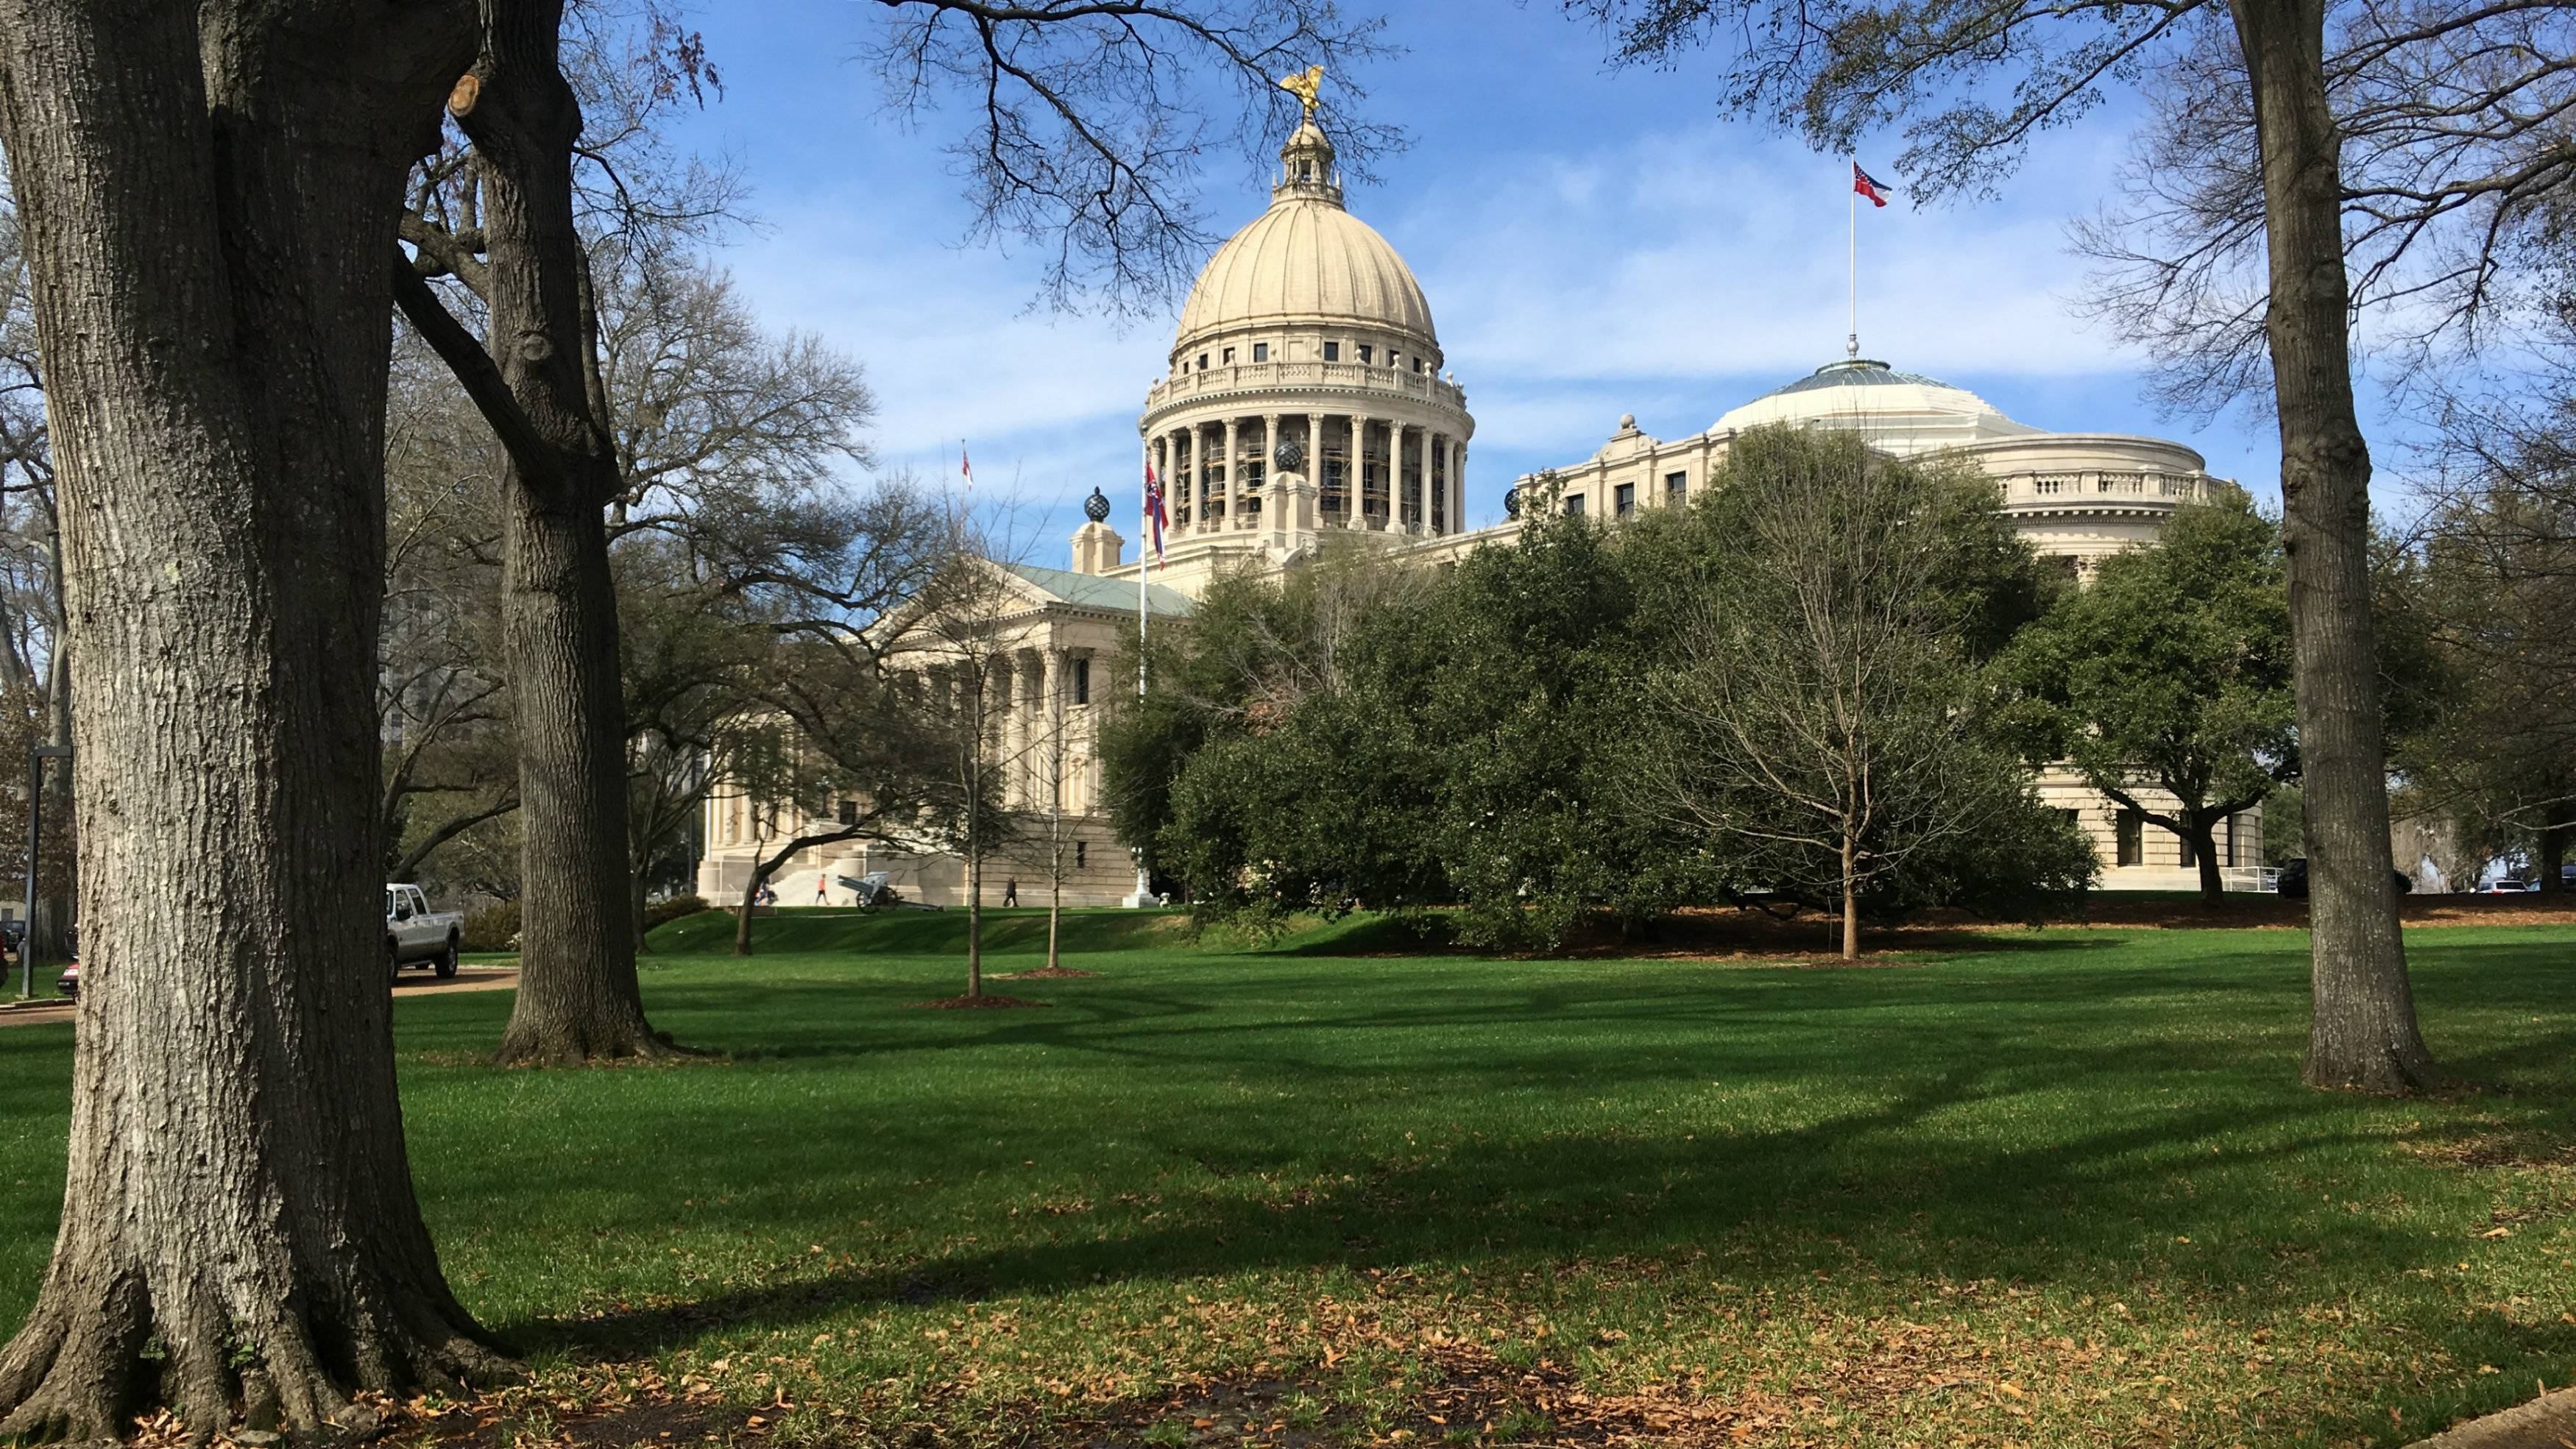 2019 Legislative Session Begins, No Hot Topics Expected on Agenda